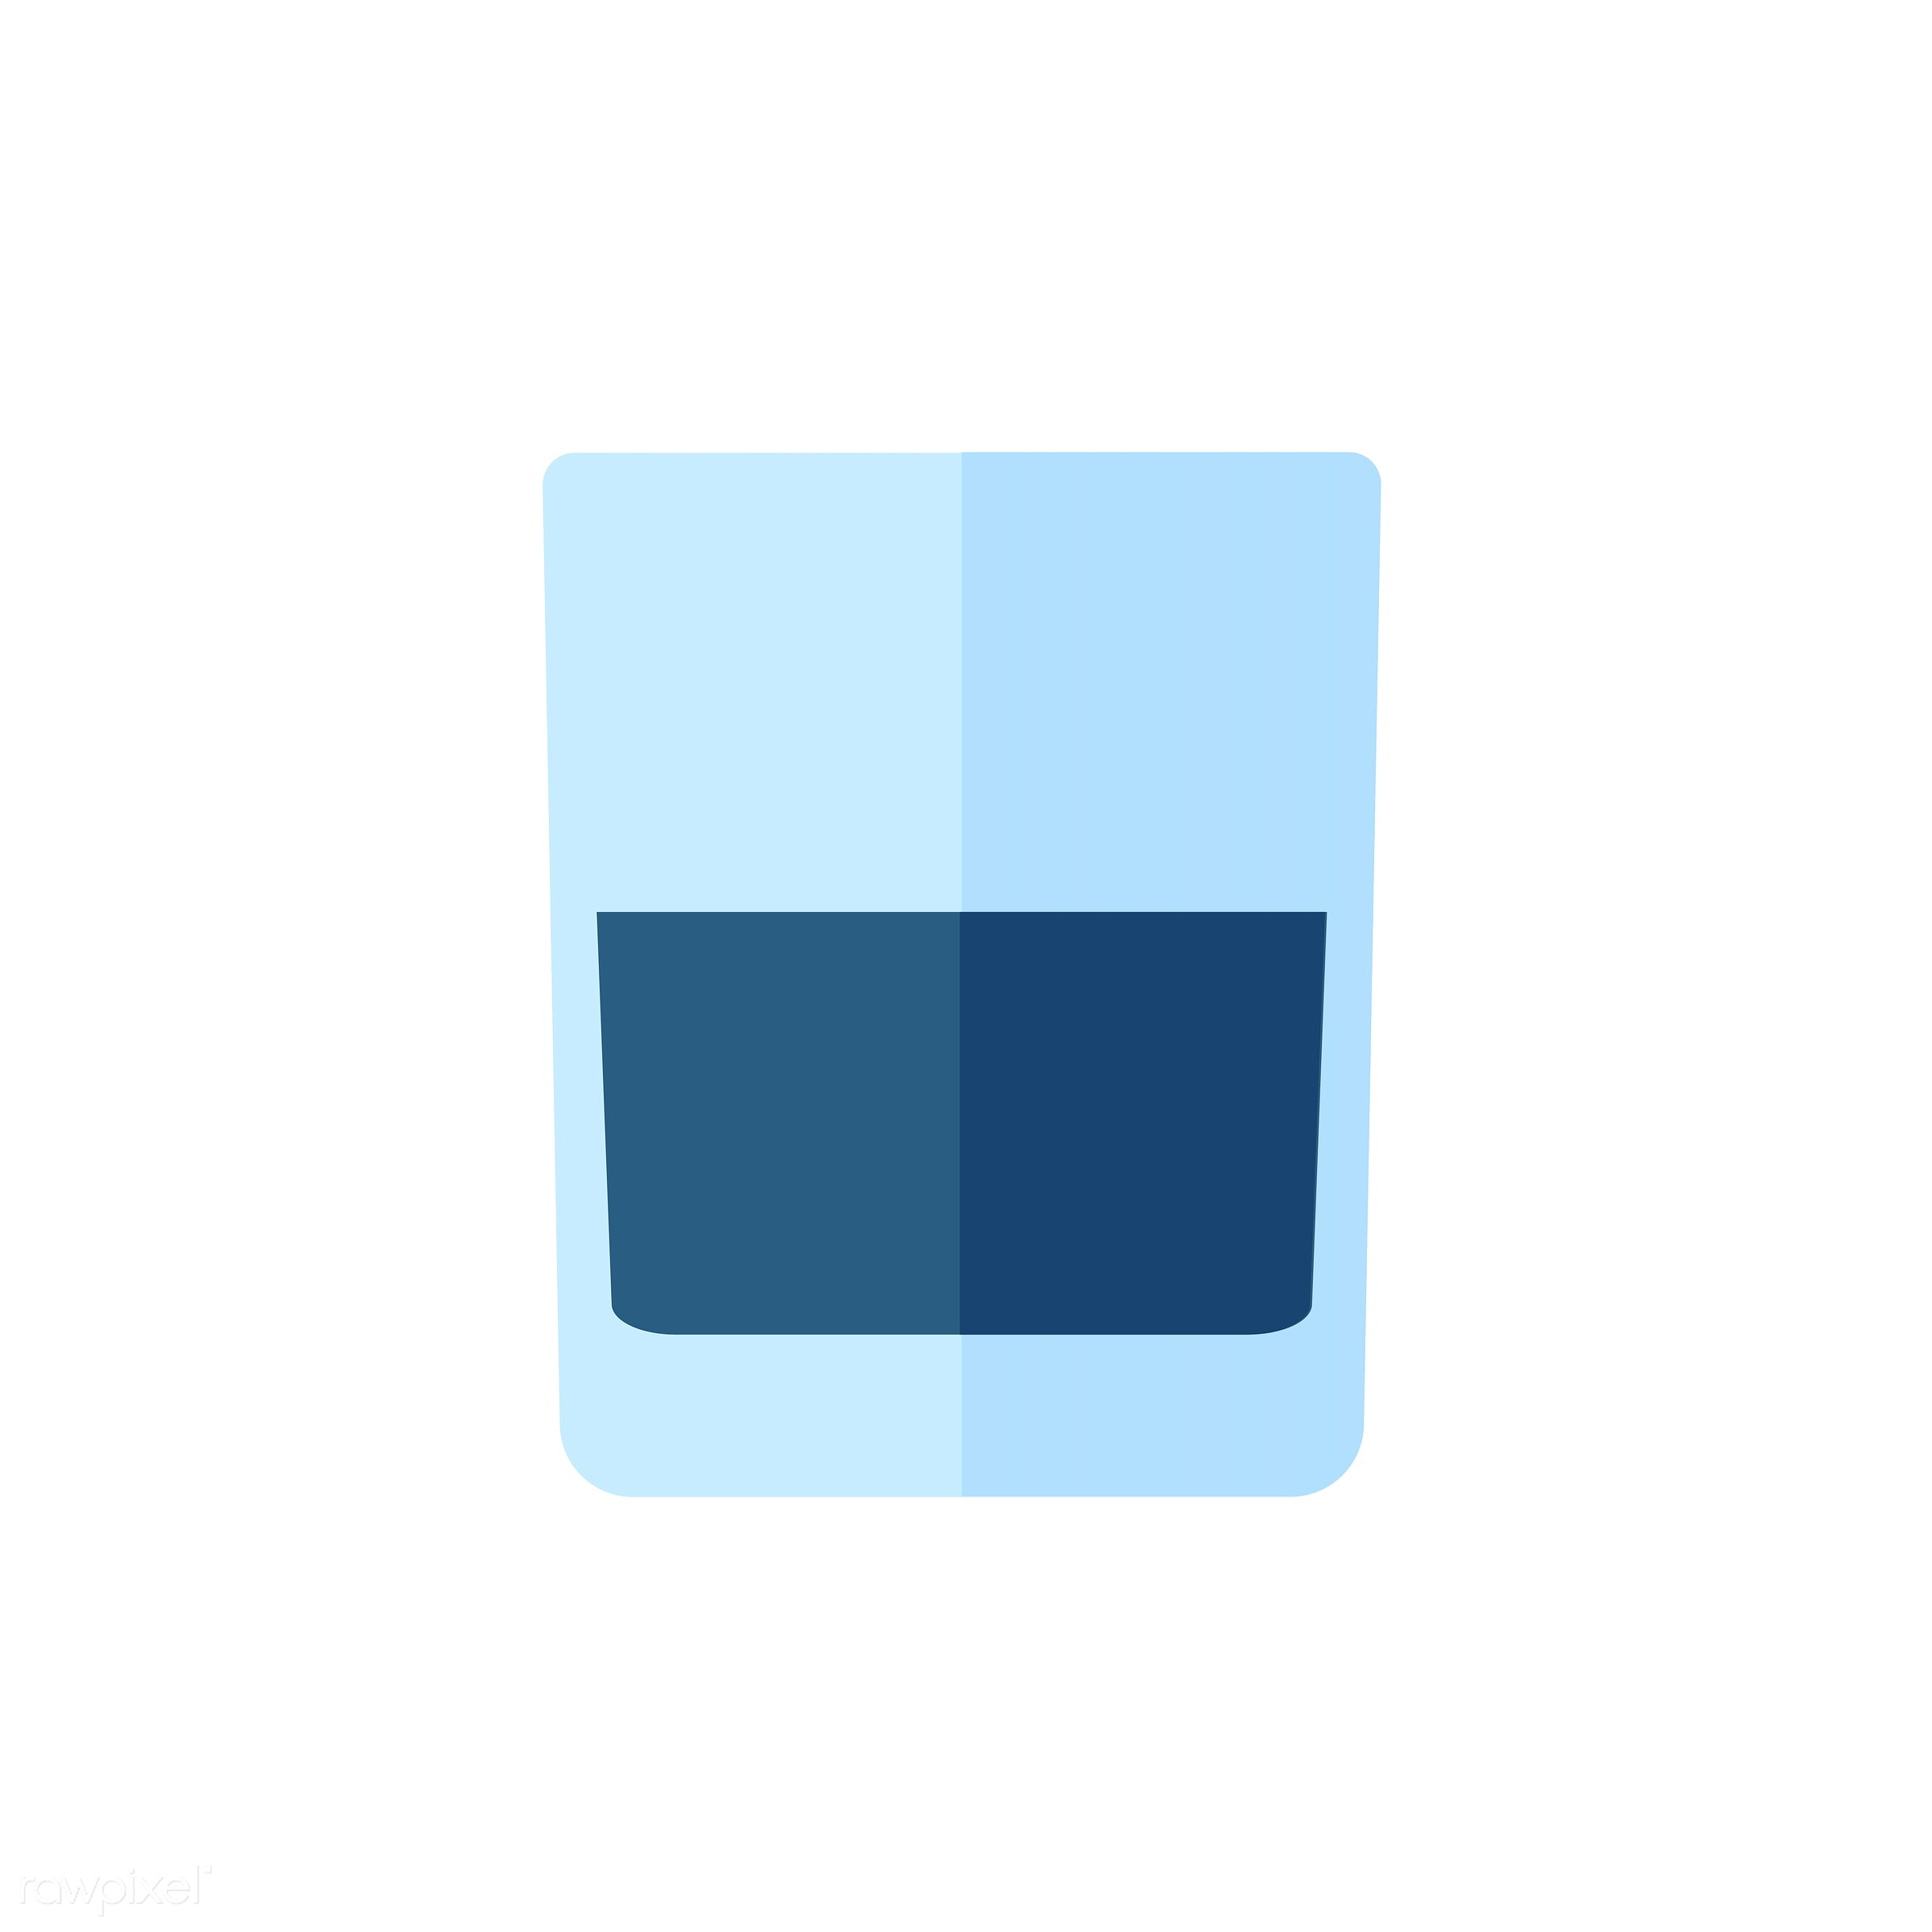 vector, graphic, illustration, icon, symbol, colorful, cute, drink, beverage, water, blue, water glass